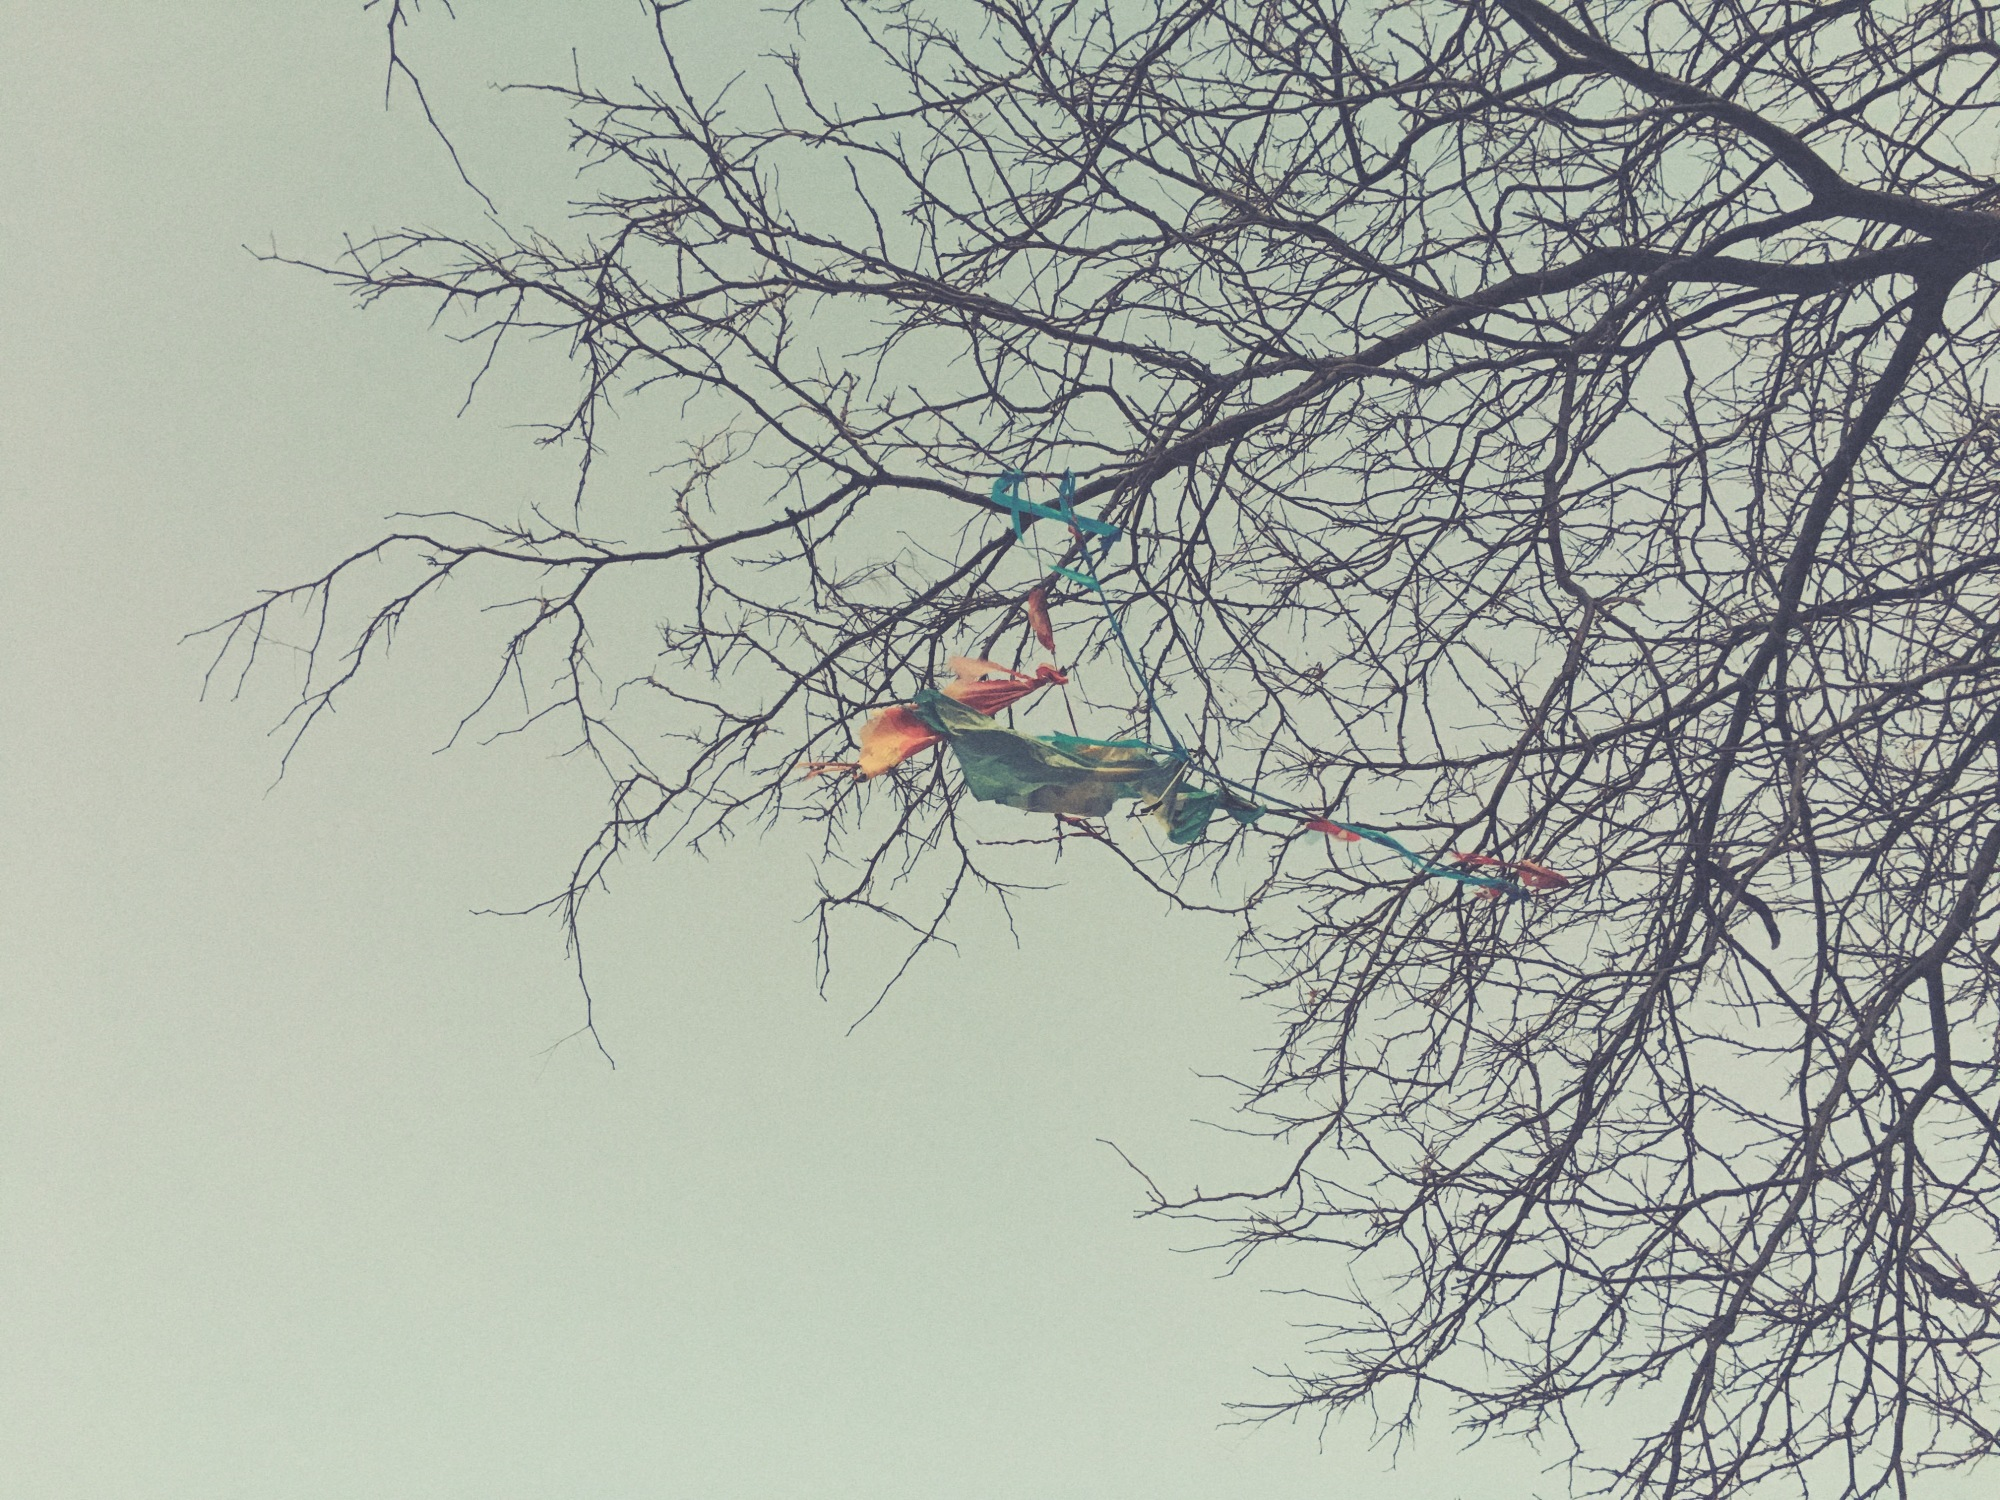 Late autumn reveals / the summer kite whose journey / ended in a tree. // haiku - micropoetry - haikumages